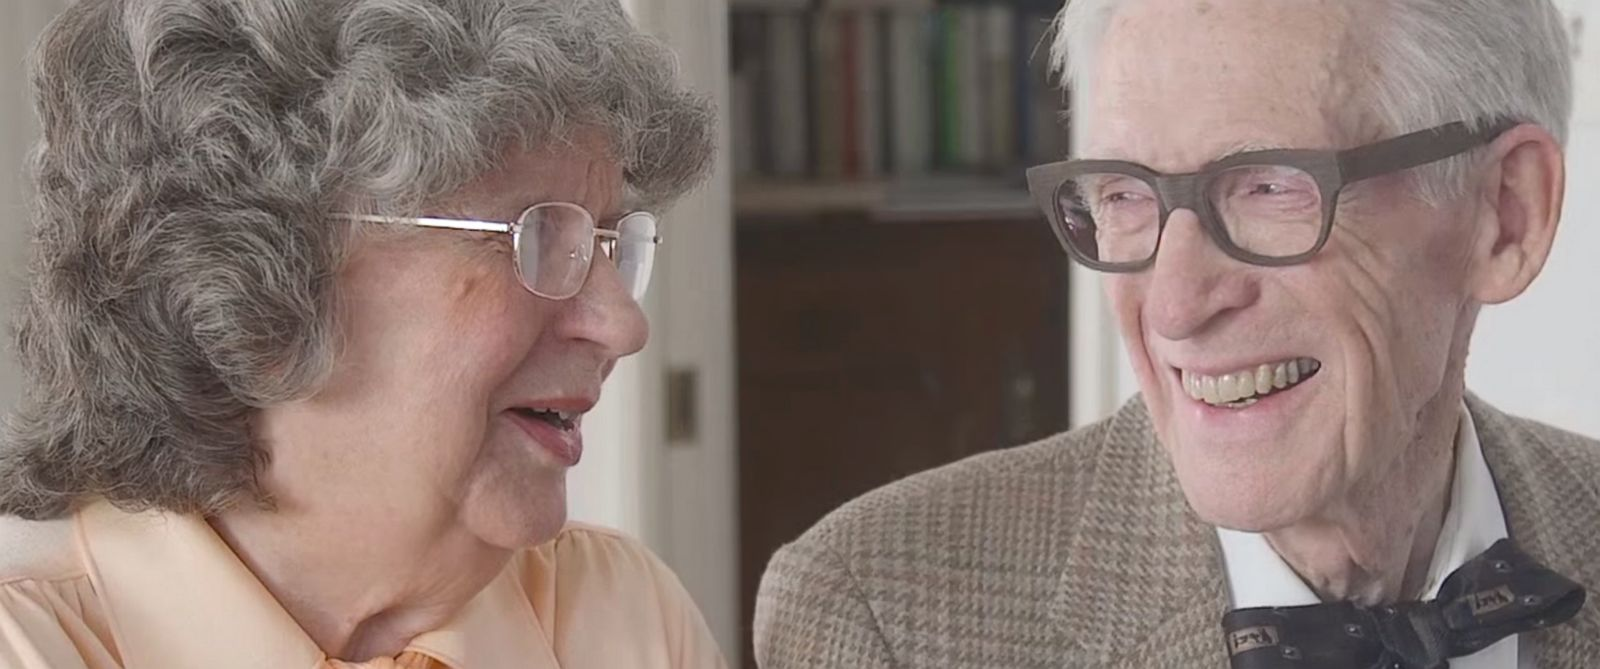 "PHOTO: Jason Lyle Black posted this video to YouTube titled: """"UP"" in Real Life: 80-Year-Old Grandparents Celebrate Anniversary with Adorable Piano Duet."""